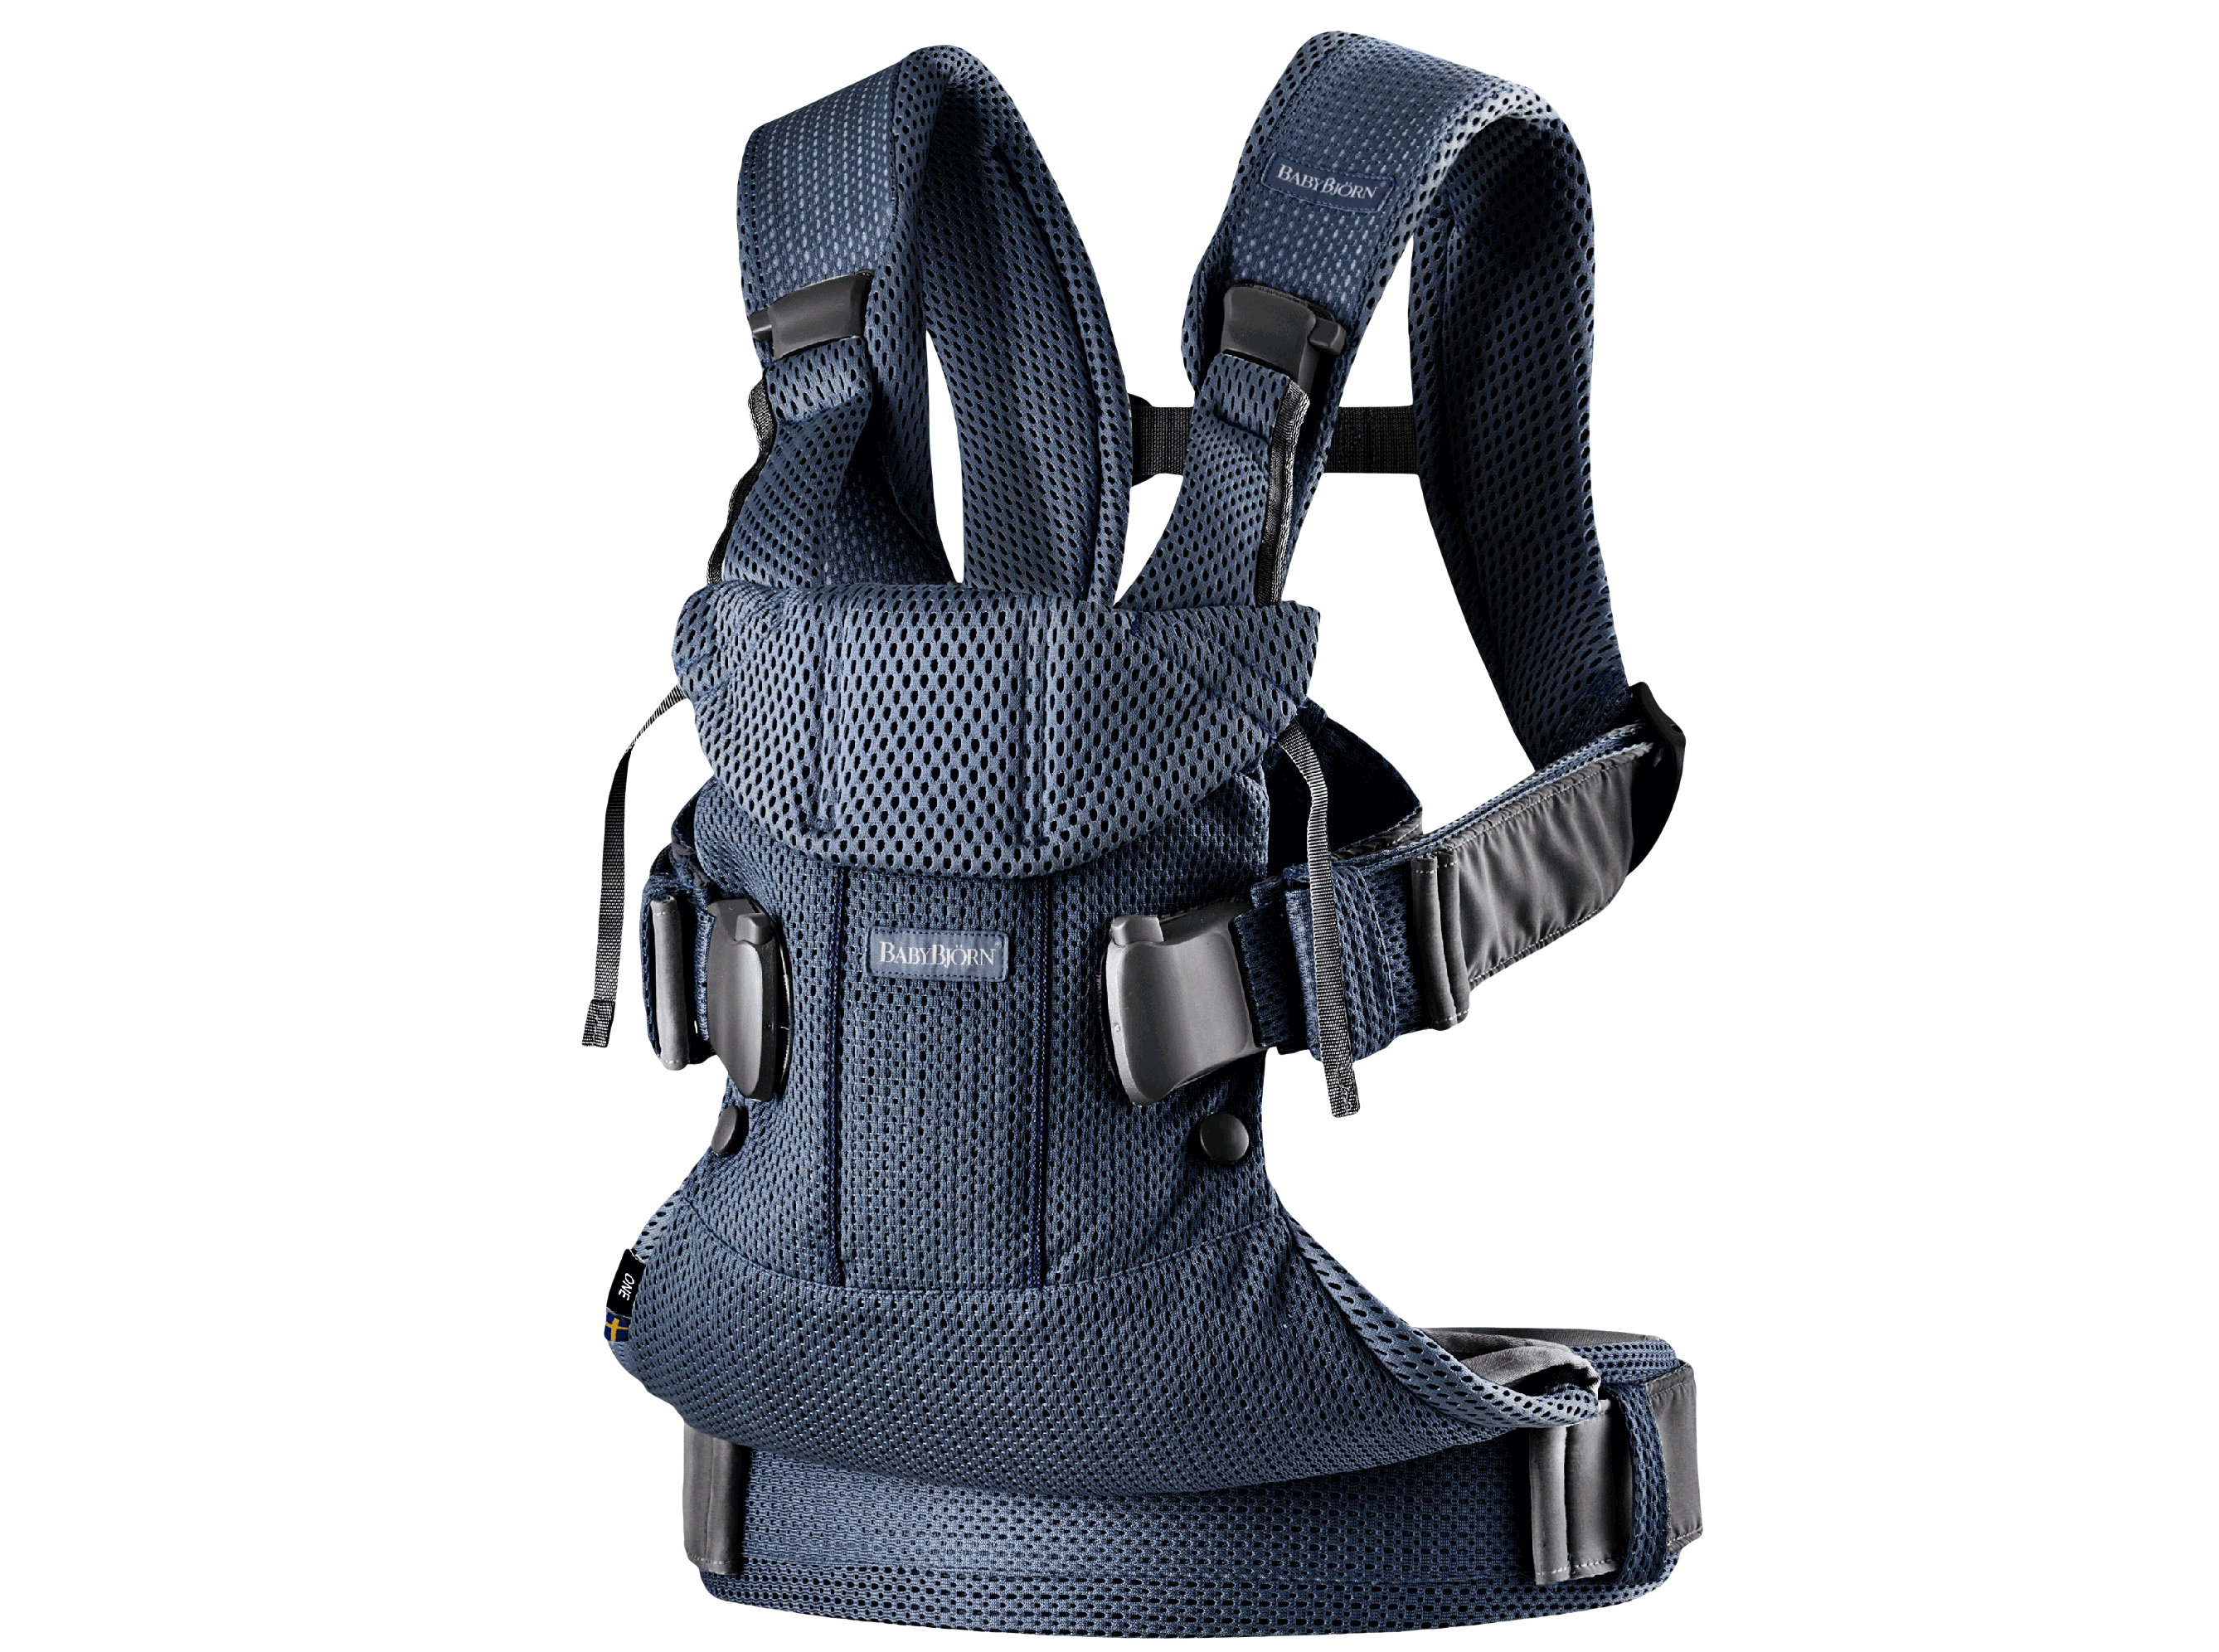 Porte-bébé One Air physiologique en mesh   BABYBJÖRN fecde756bba